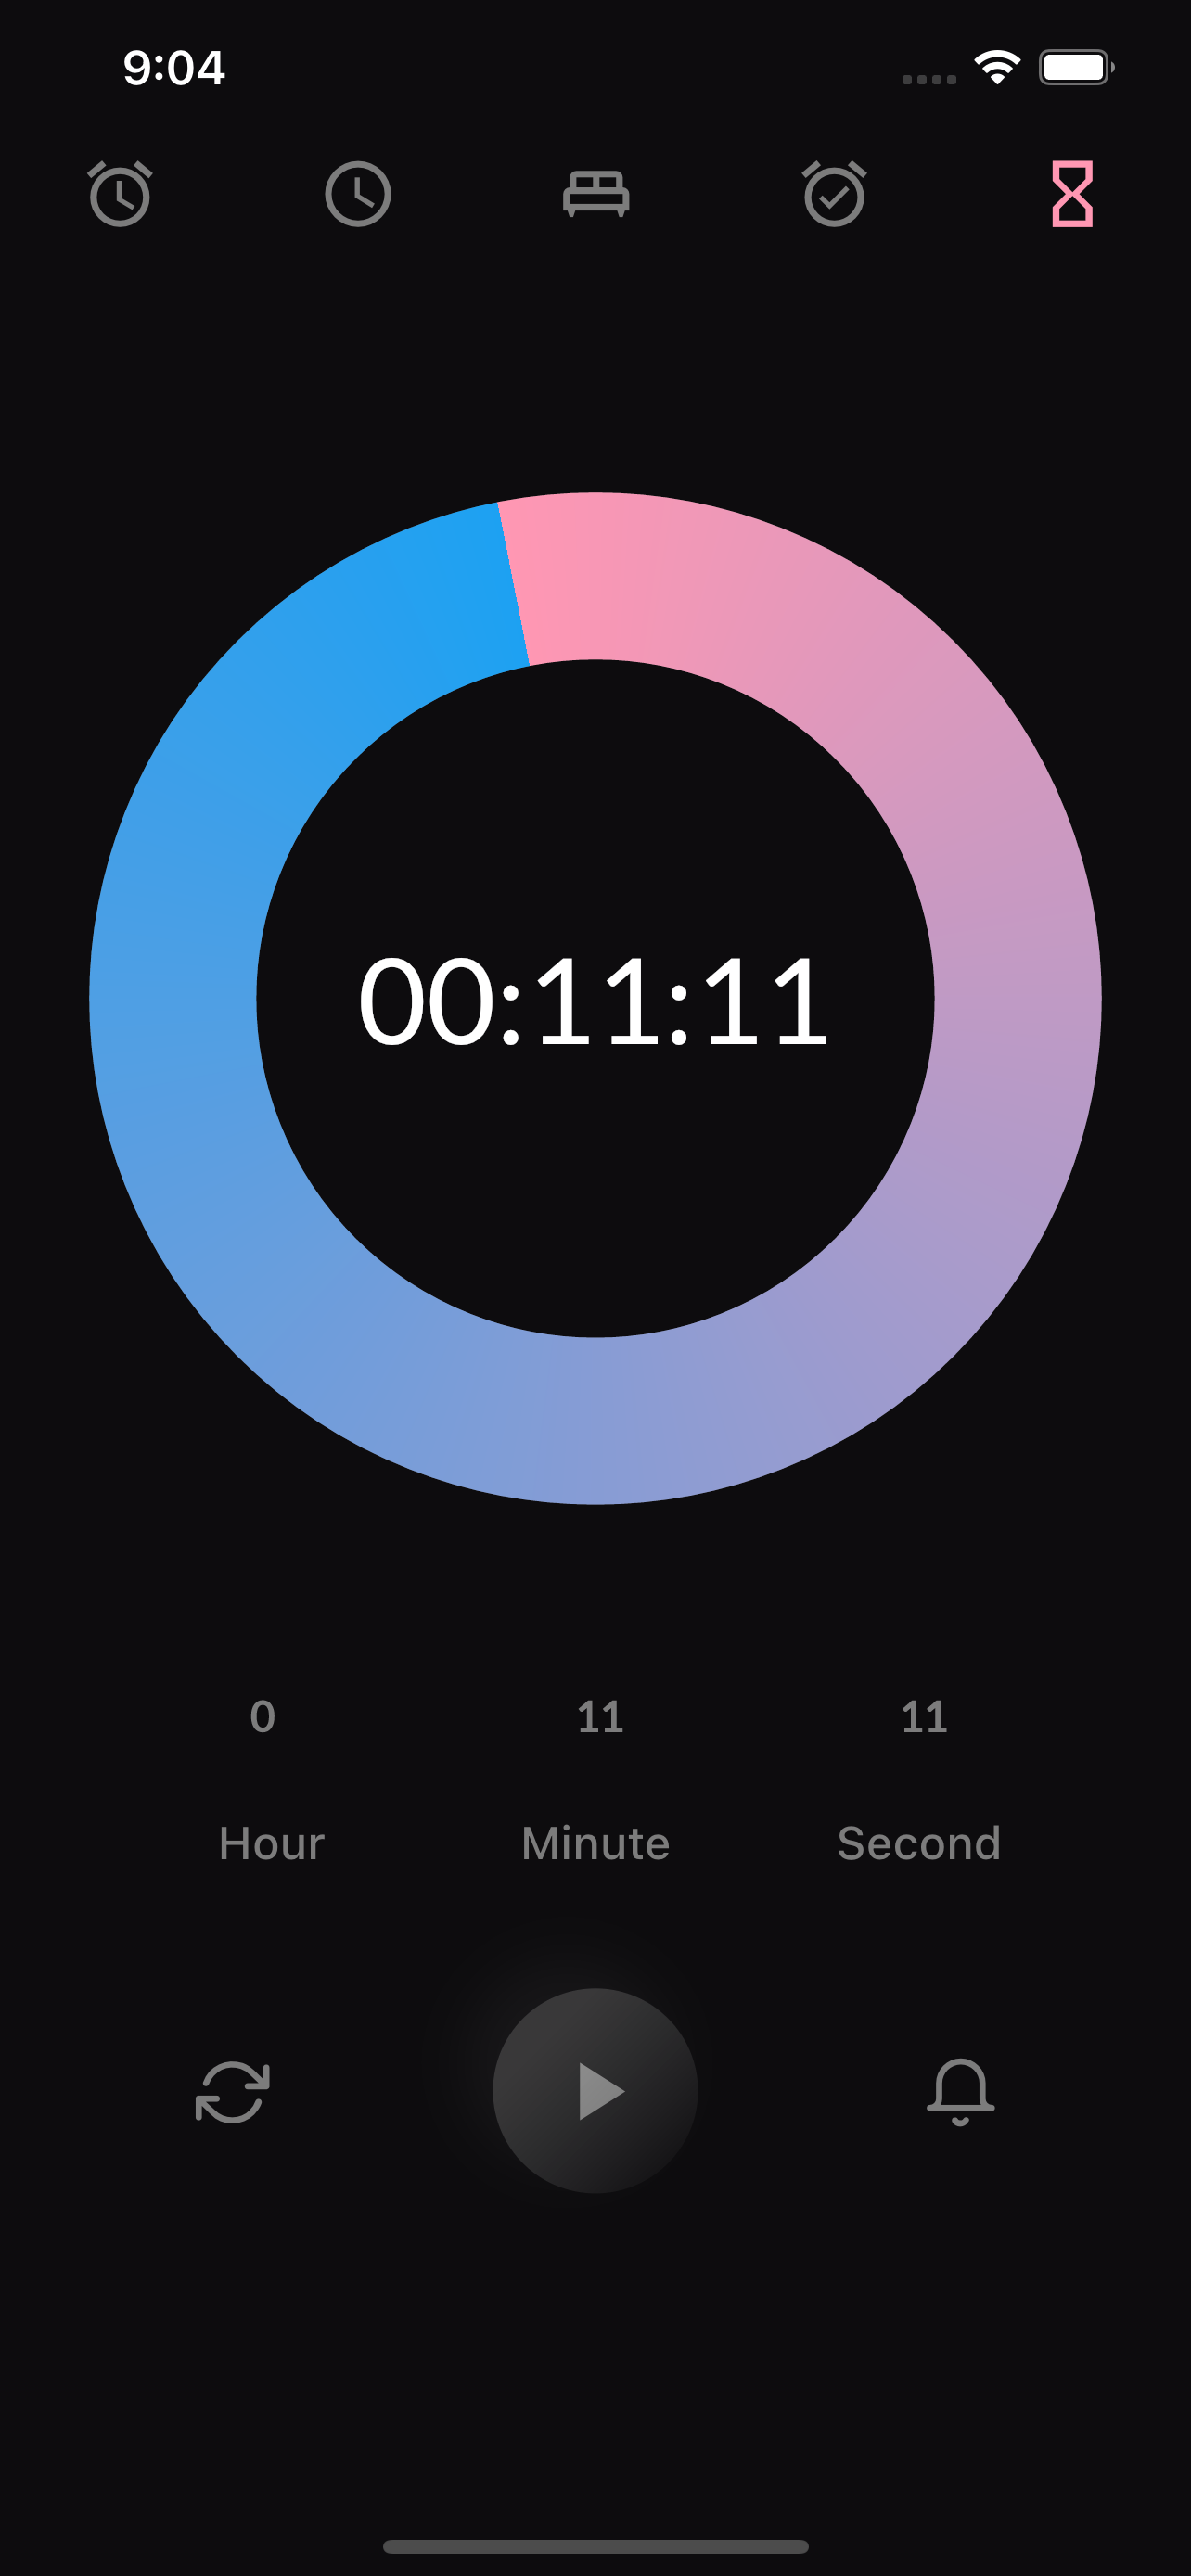 A Nice Clean Analog Clock App UI With Flutter